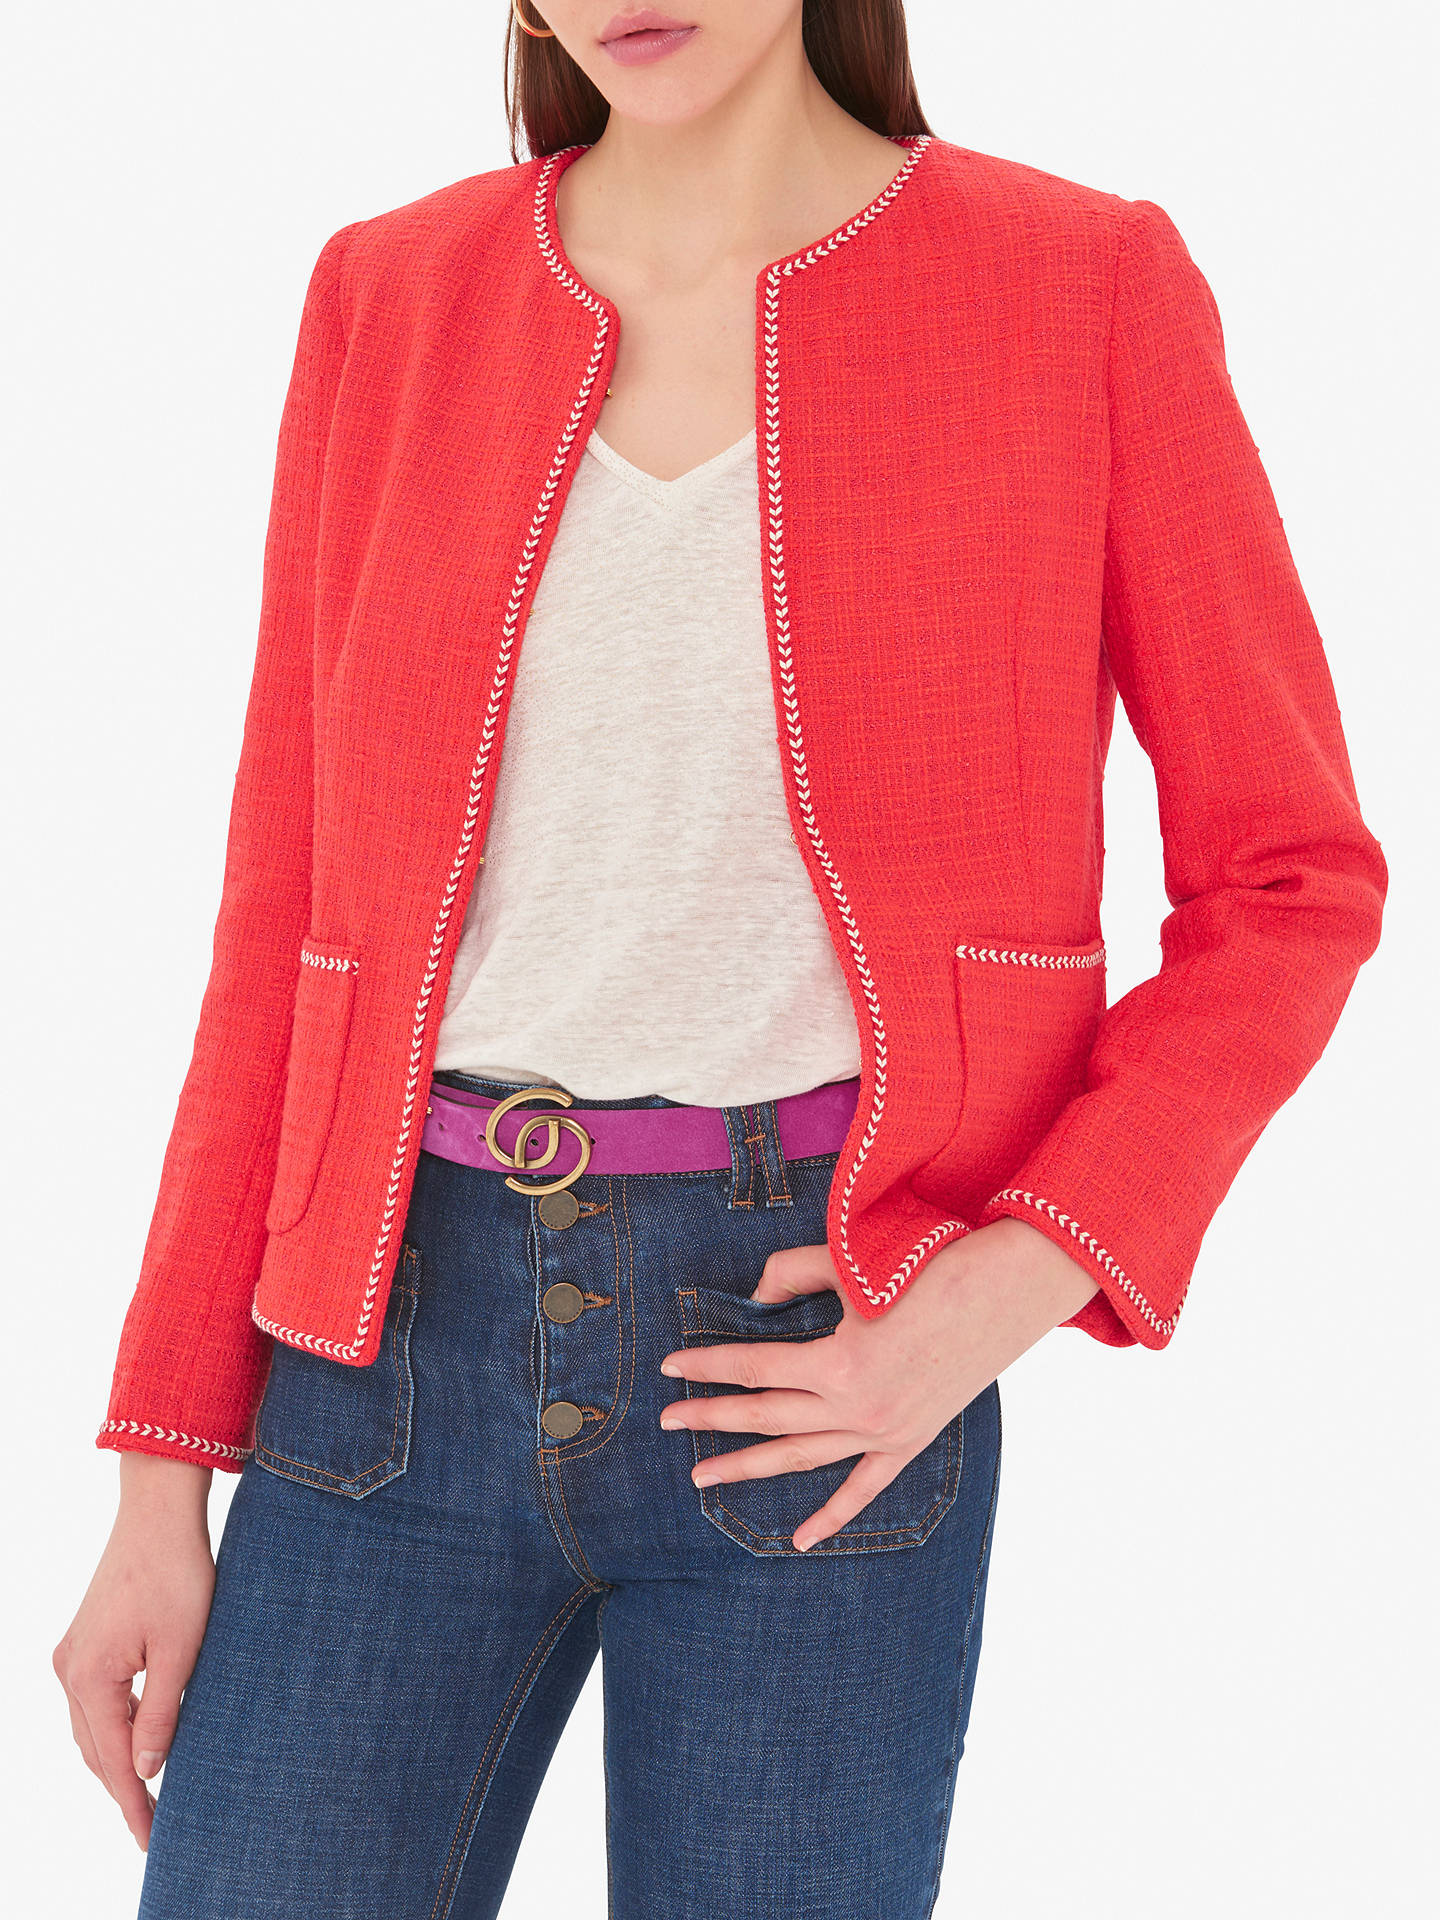 paras hinta upouusi kuuma tuote Gerard Darel Scarlette Textured Jacket, Red at John Lewis ...